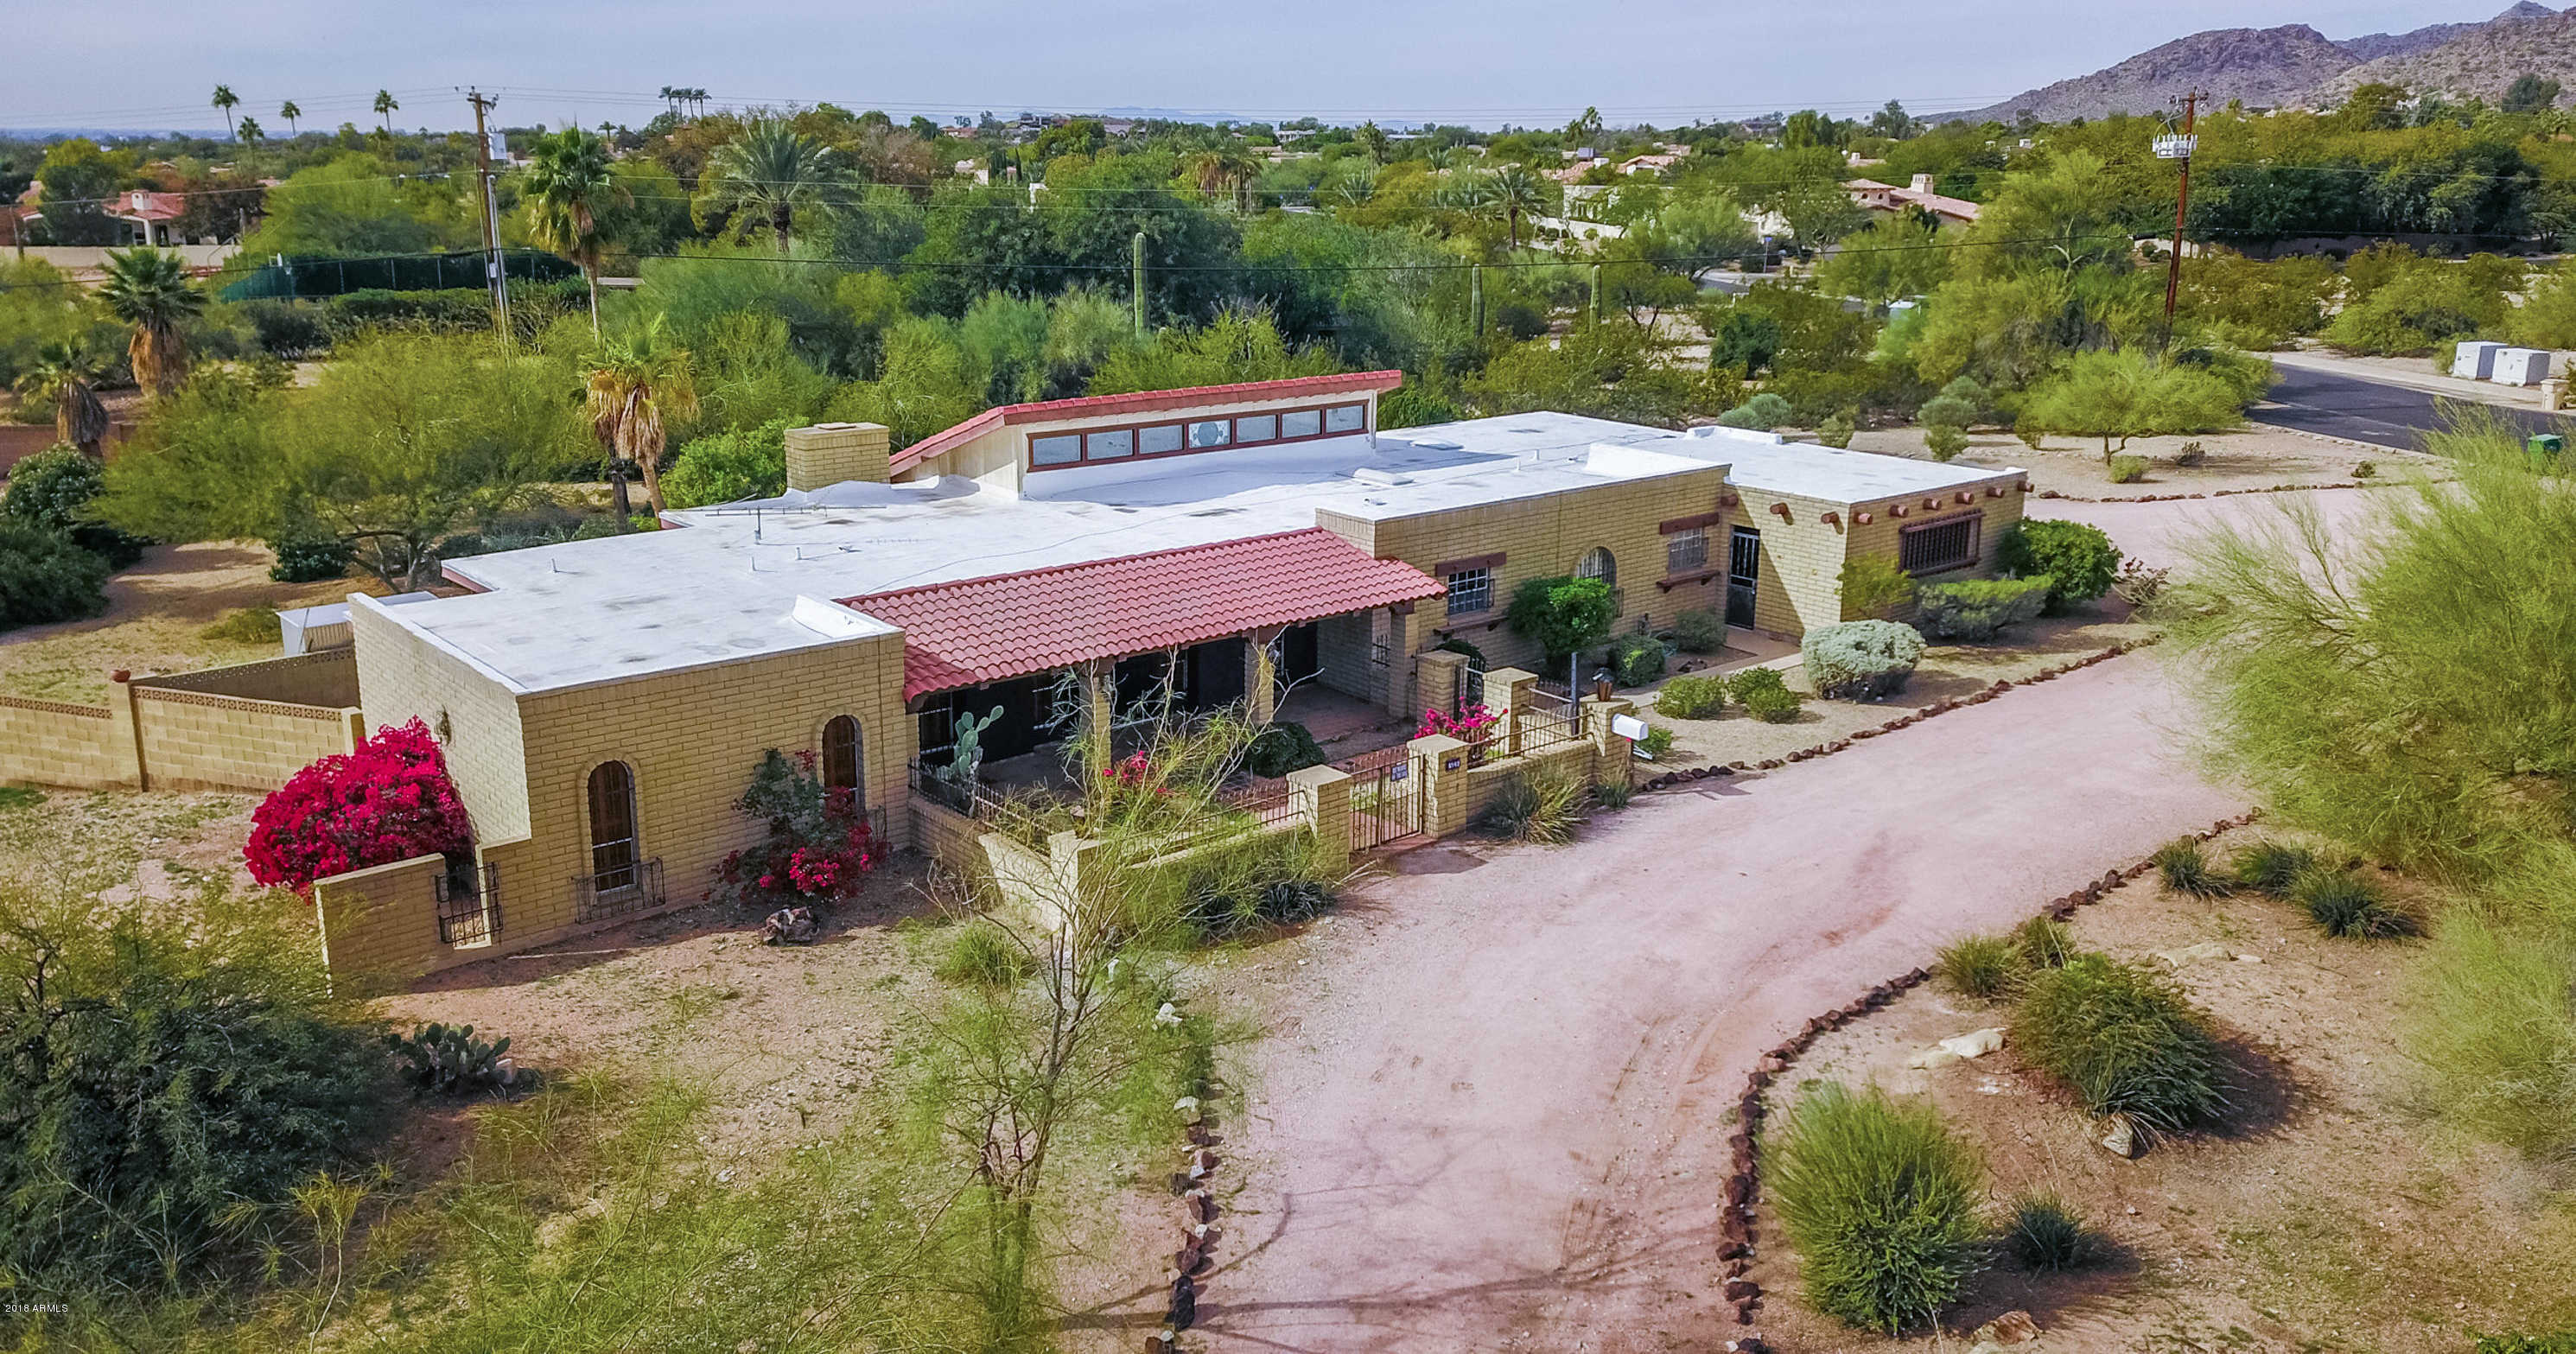 $1,100,000 - 3Br/2Ba - Home for Sale in Arroyo Heights, Paradise Valley